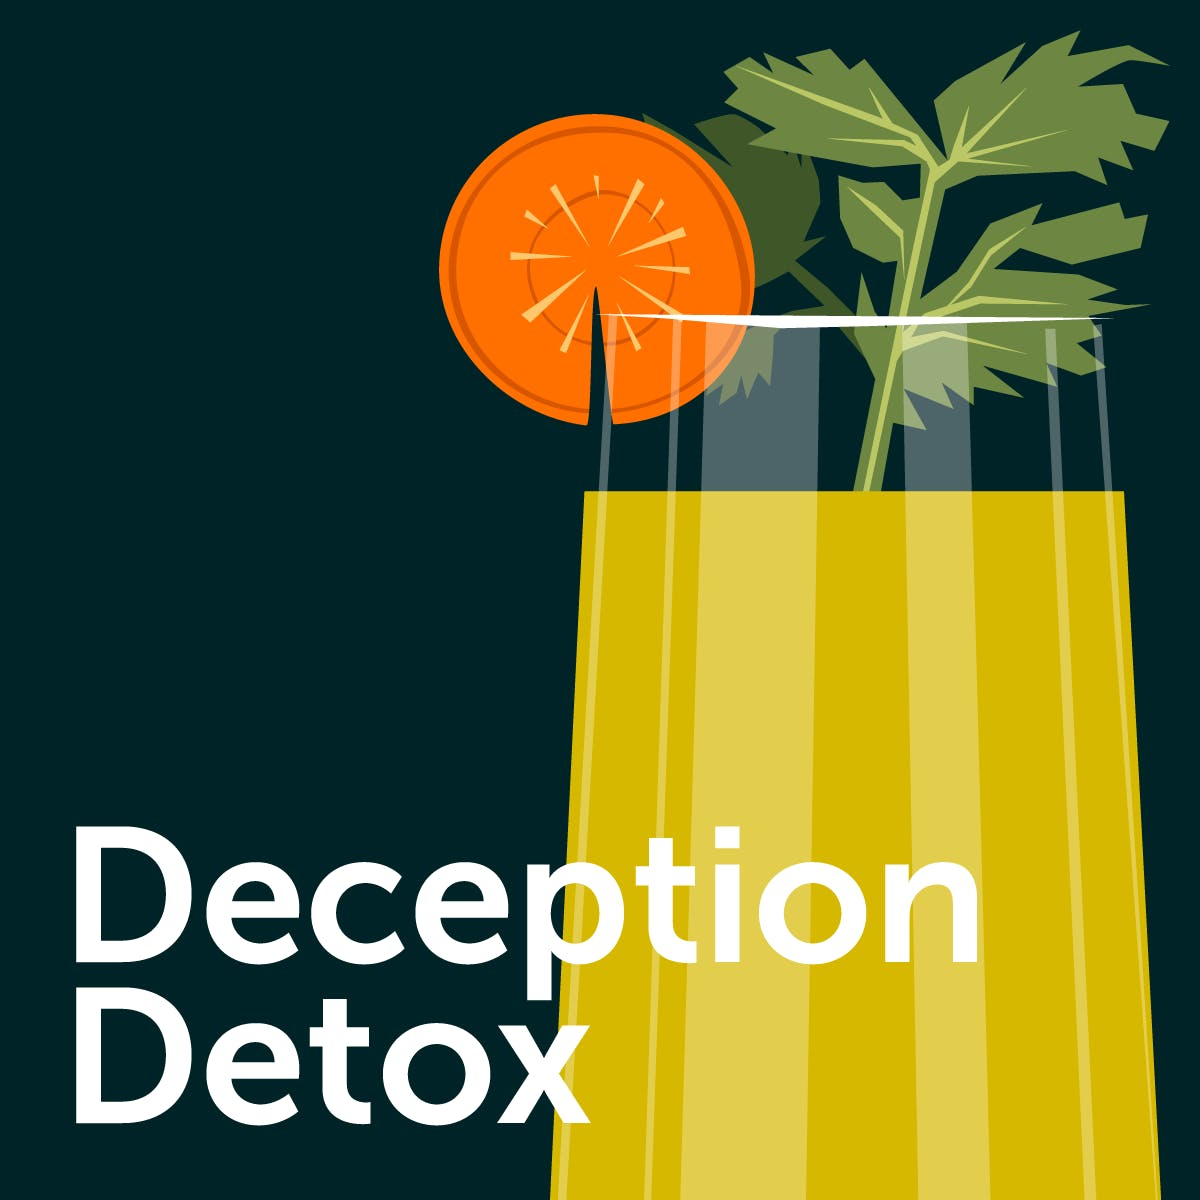 Deception Detox - using research methods and statistics to change the world